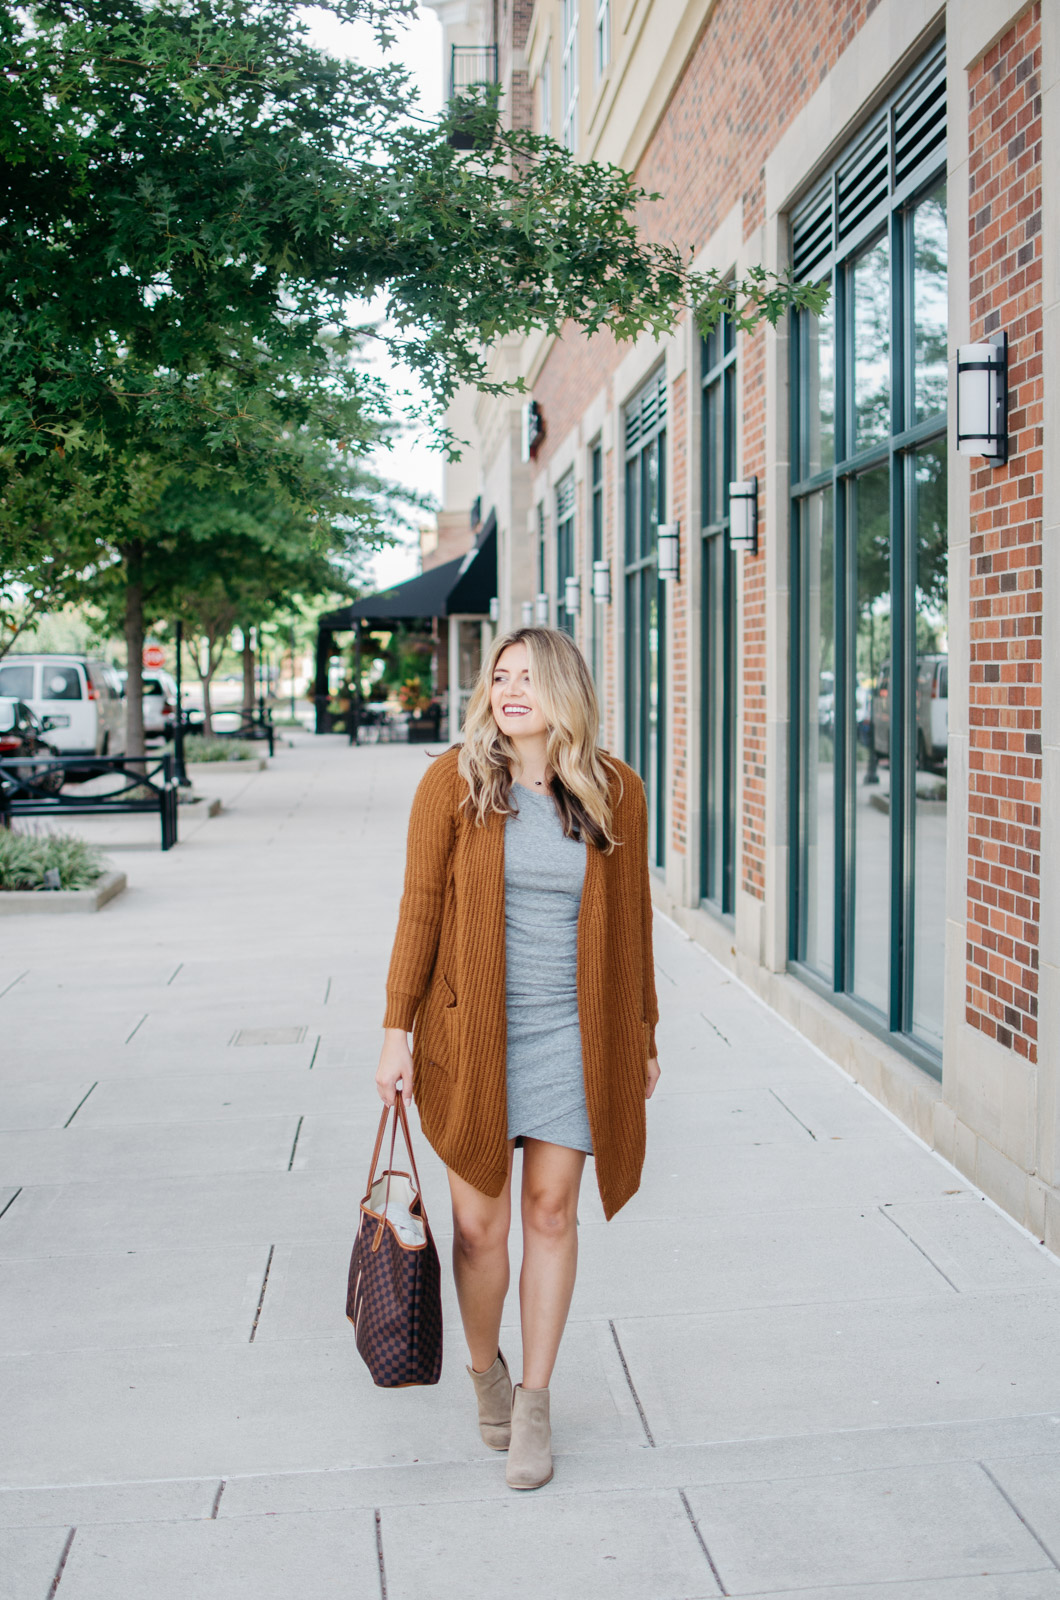 ruched dress outfit ideas - how wear ruched dress casually | Click through to see how to wear this dress for date night! bylaurenm.com